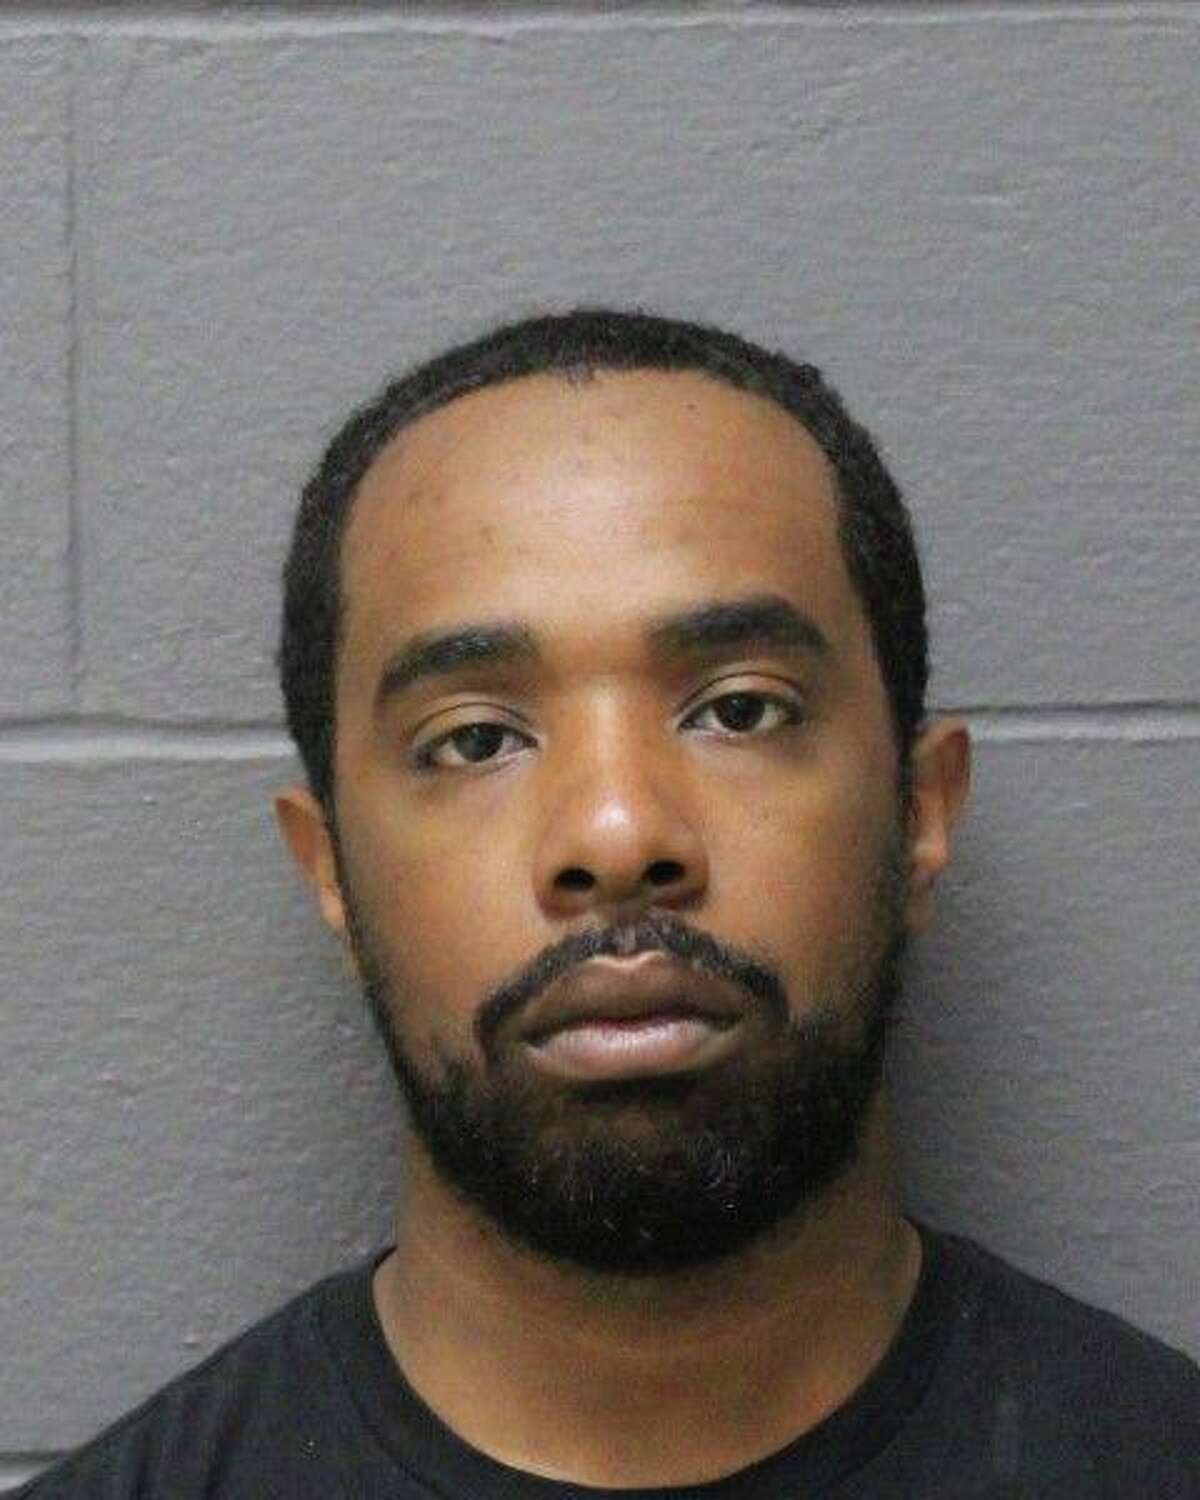 Robert Perkins, 26, of Lepage Road in Windsor, Conn., was charged on June 4, 2021, with second-degree manslaughter, first-degree reckless endangerment, reckless driving and driving under the influence. He was released on a $150,000 bond and is next scheduled to appear in court on June 18.